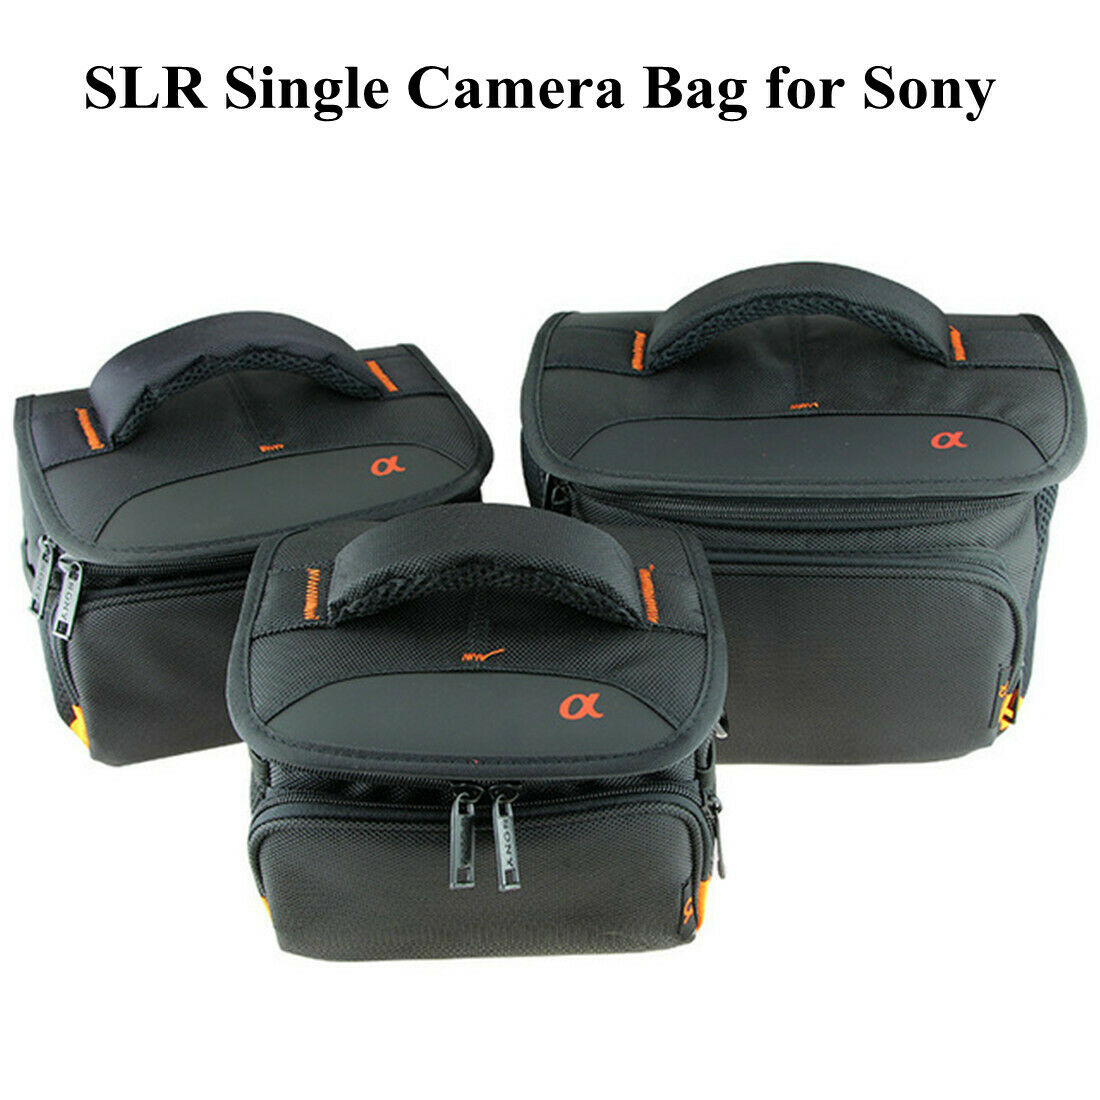 SLR Single Bag Camera Bag for Sony a6000 a6300 a5100 A7M2 with Strap Waterproof